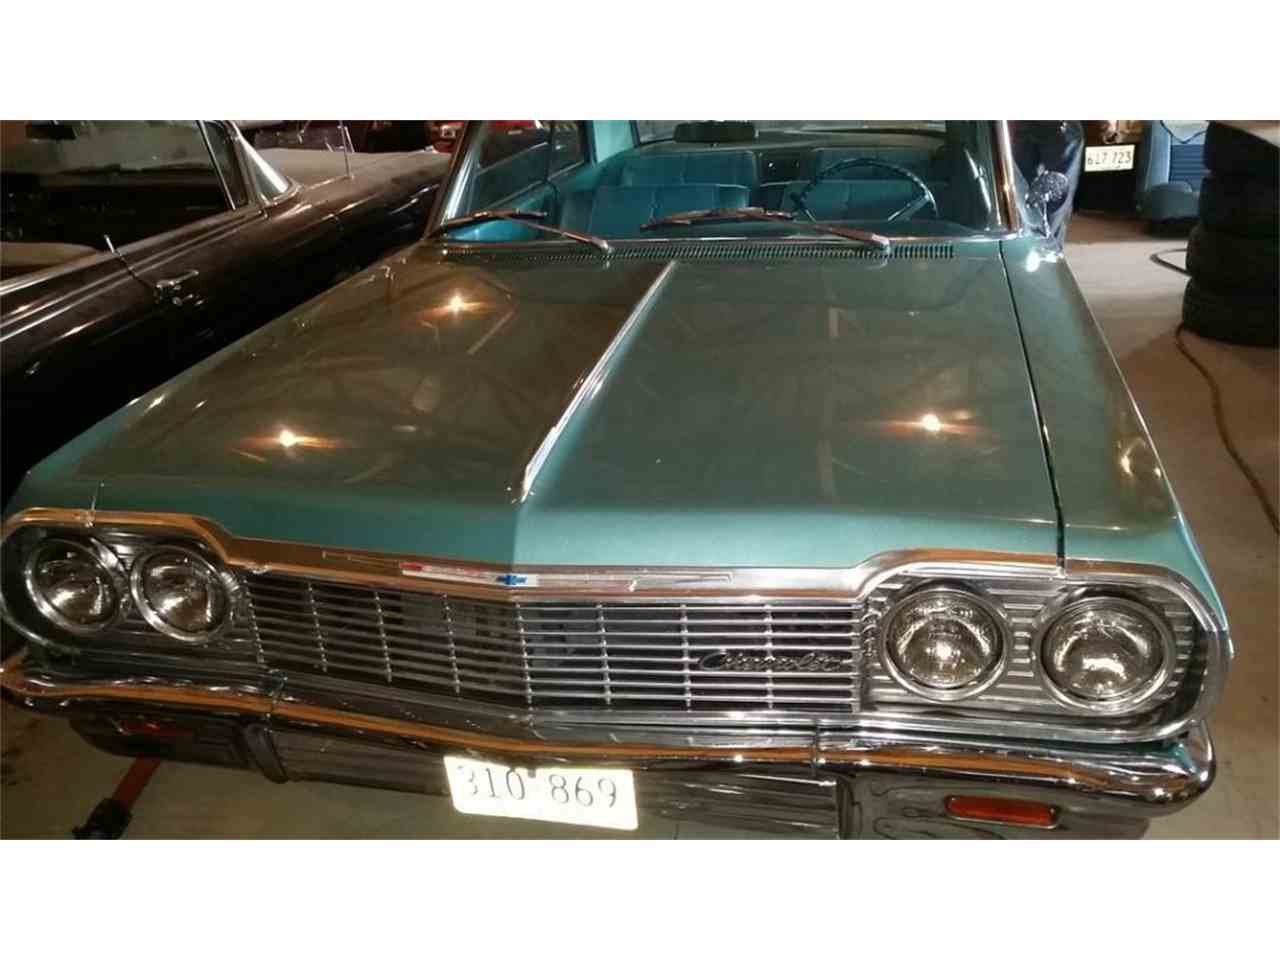 Large Picture of '64 Chevrolet IMPALA 2 DOOR HARDTOP - $21,500.00 Offered by Classic Rides and Rods - J1JM